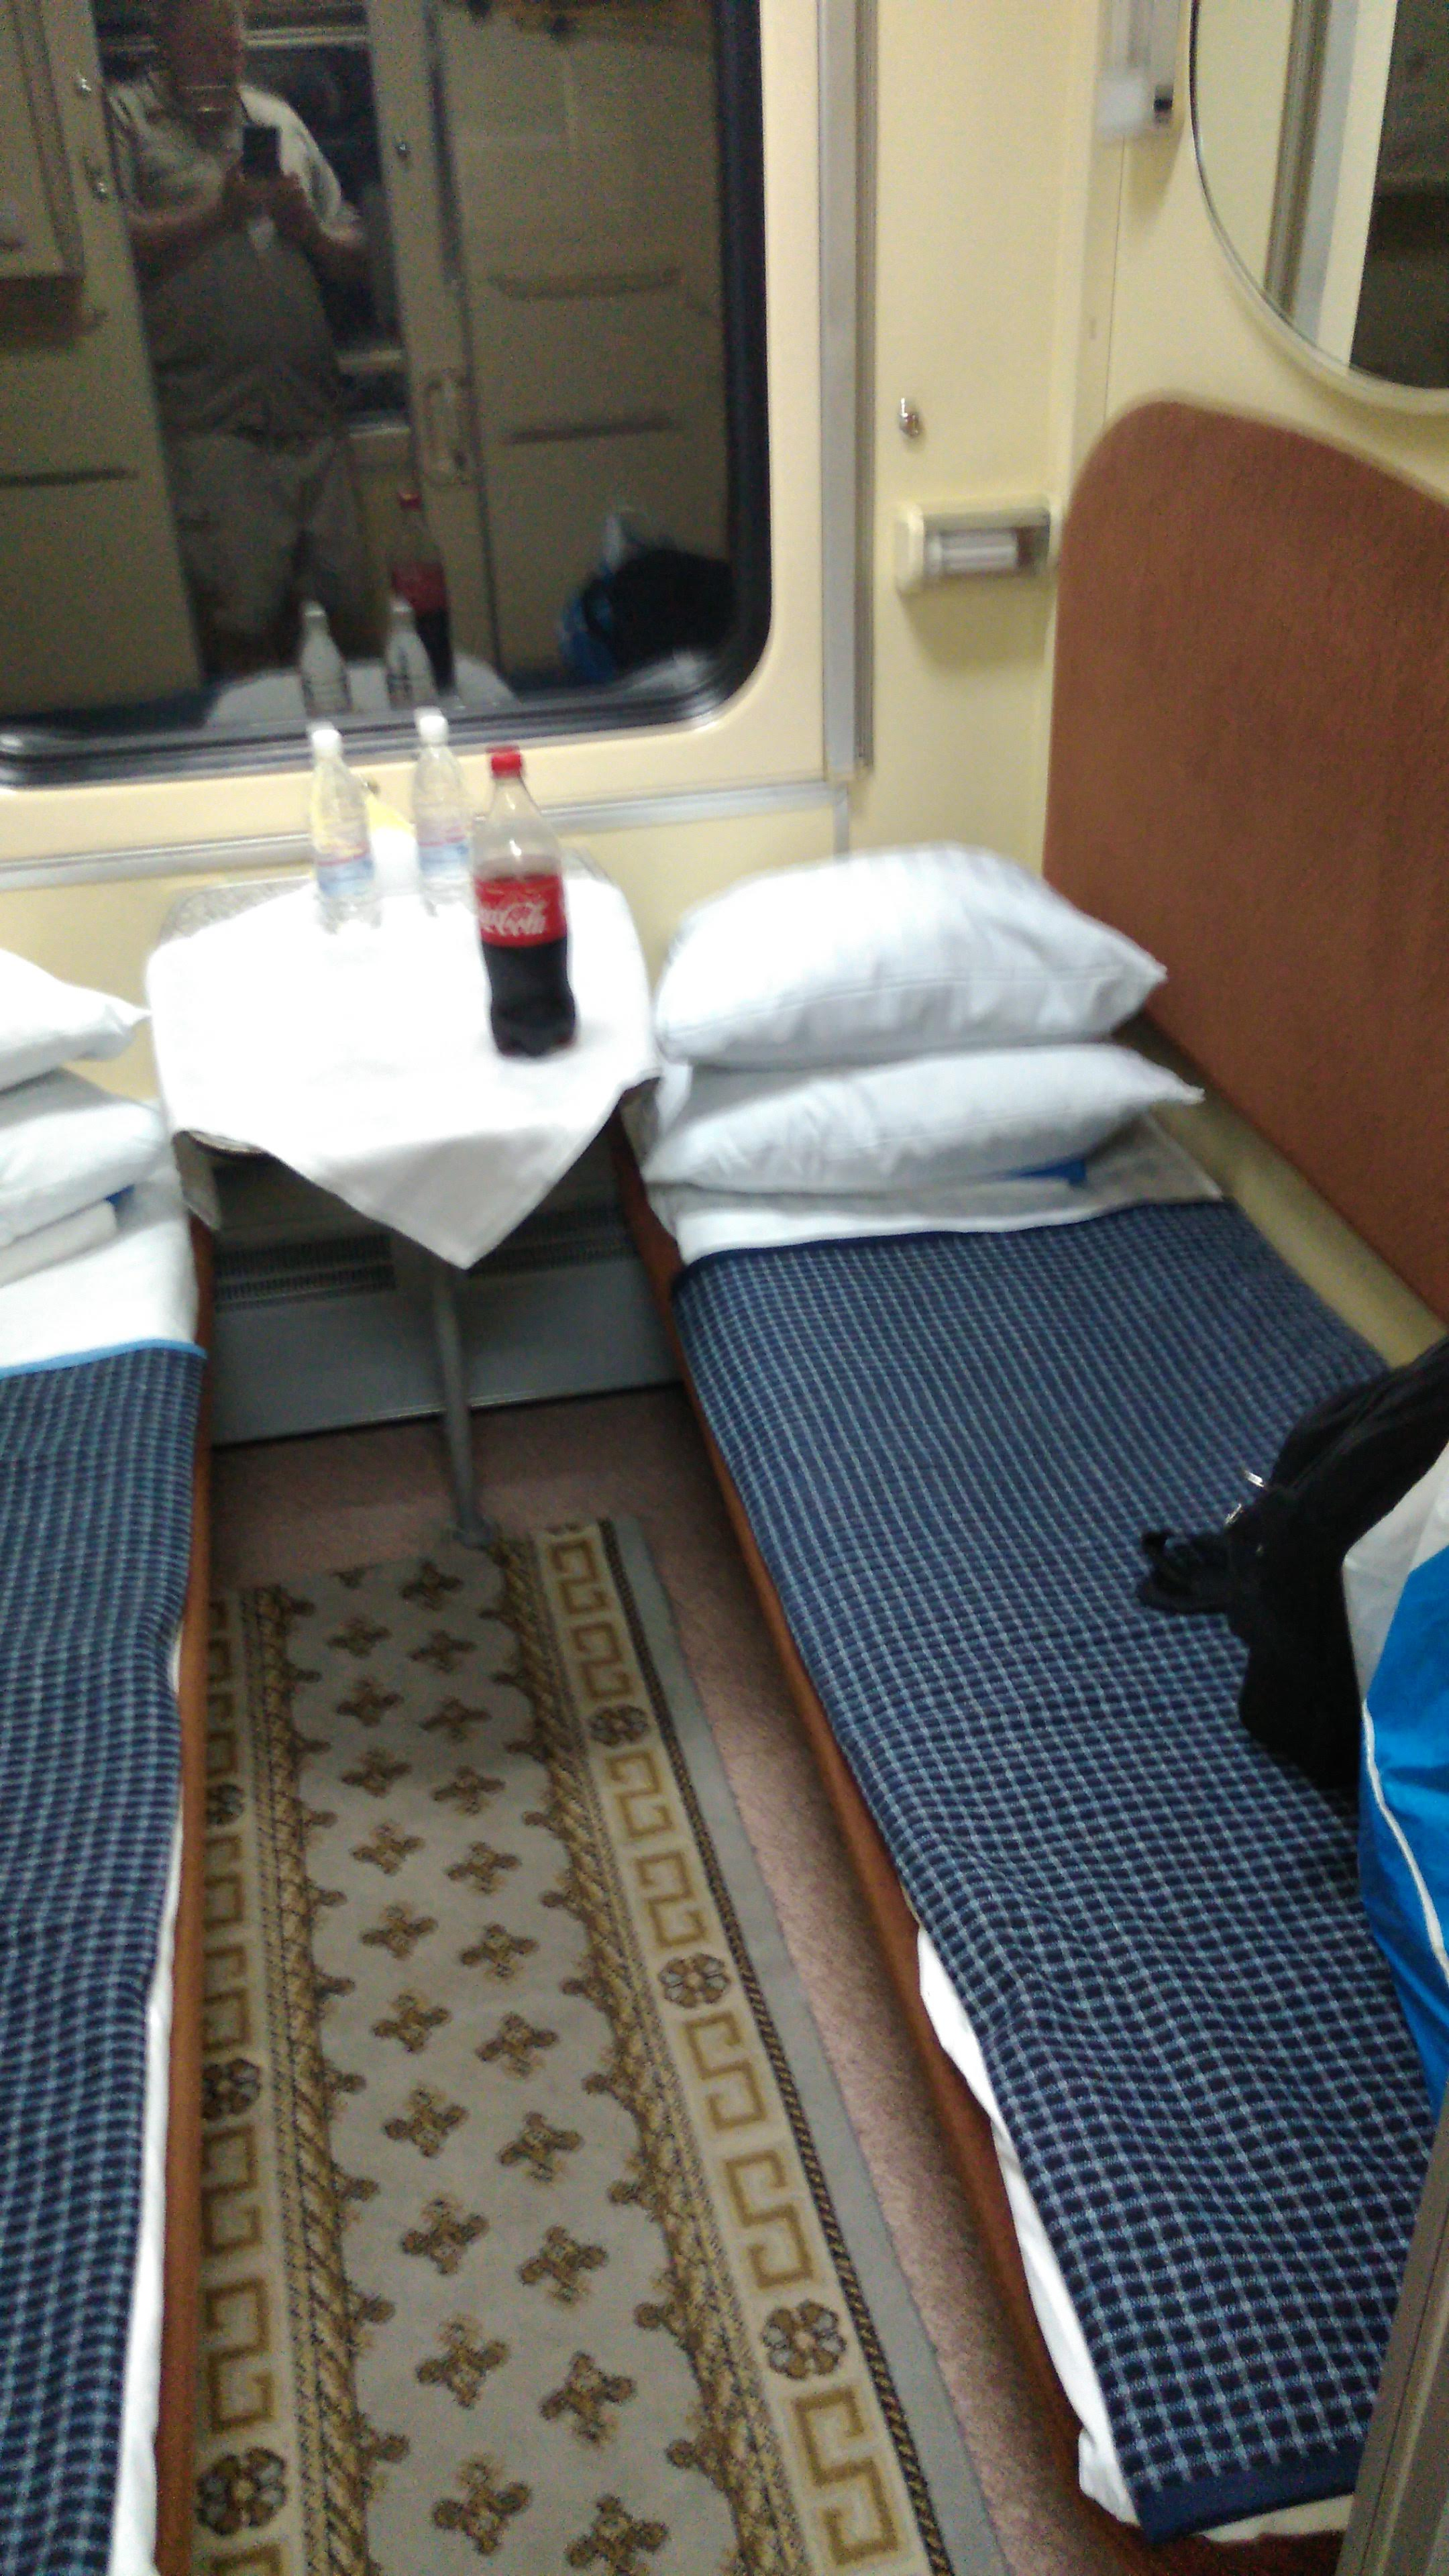 A view of the De Luxe or two berth cabin where you get two pillows